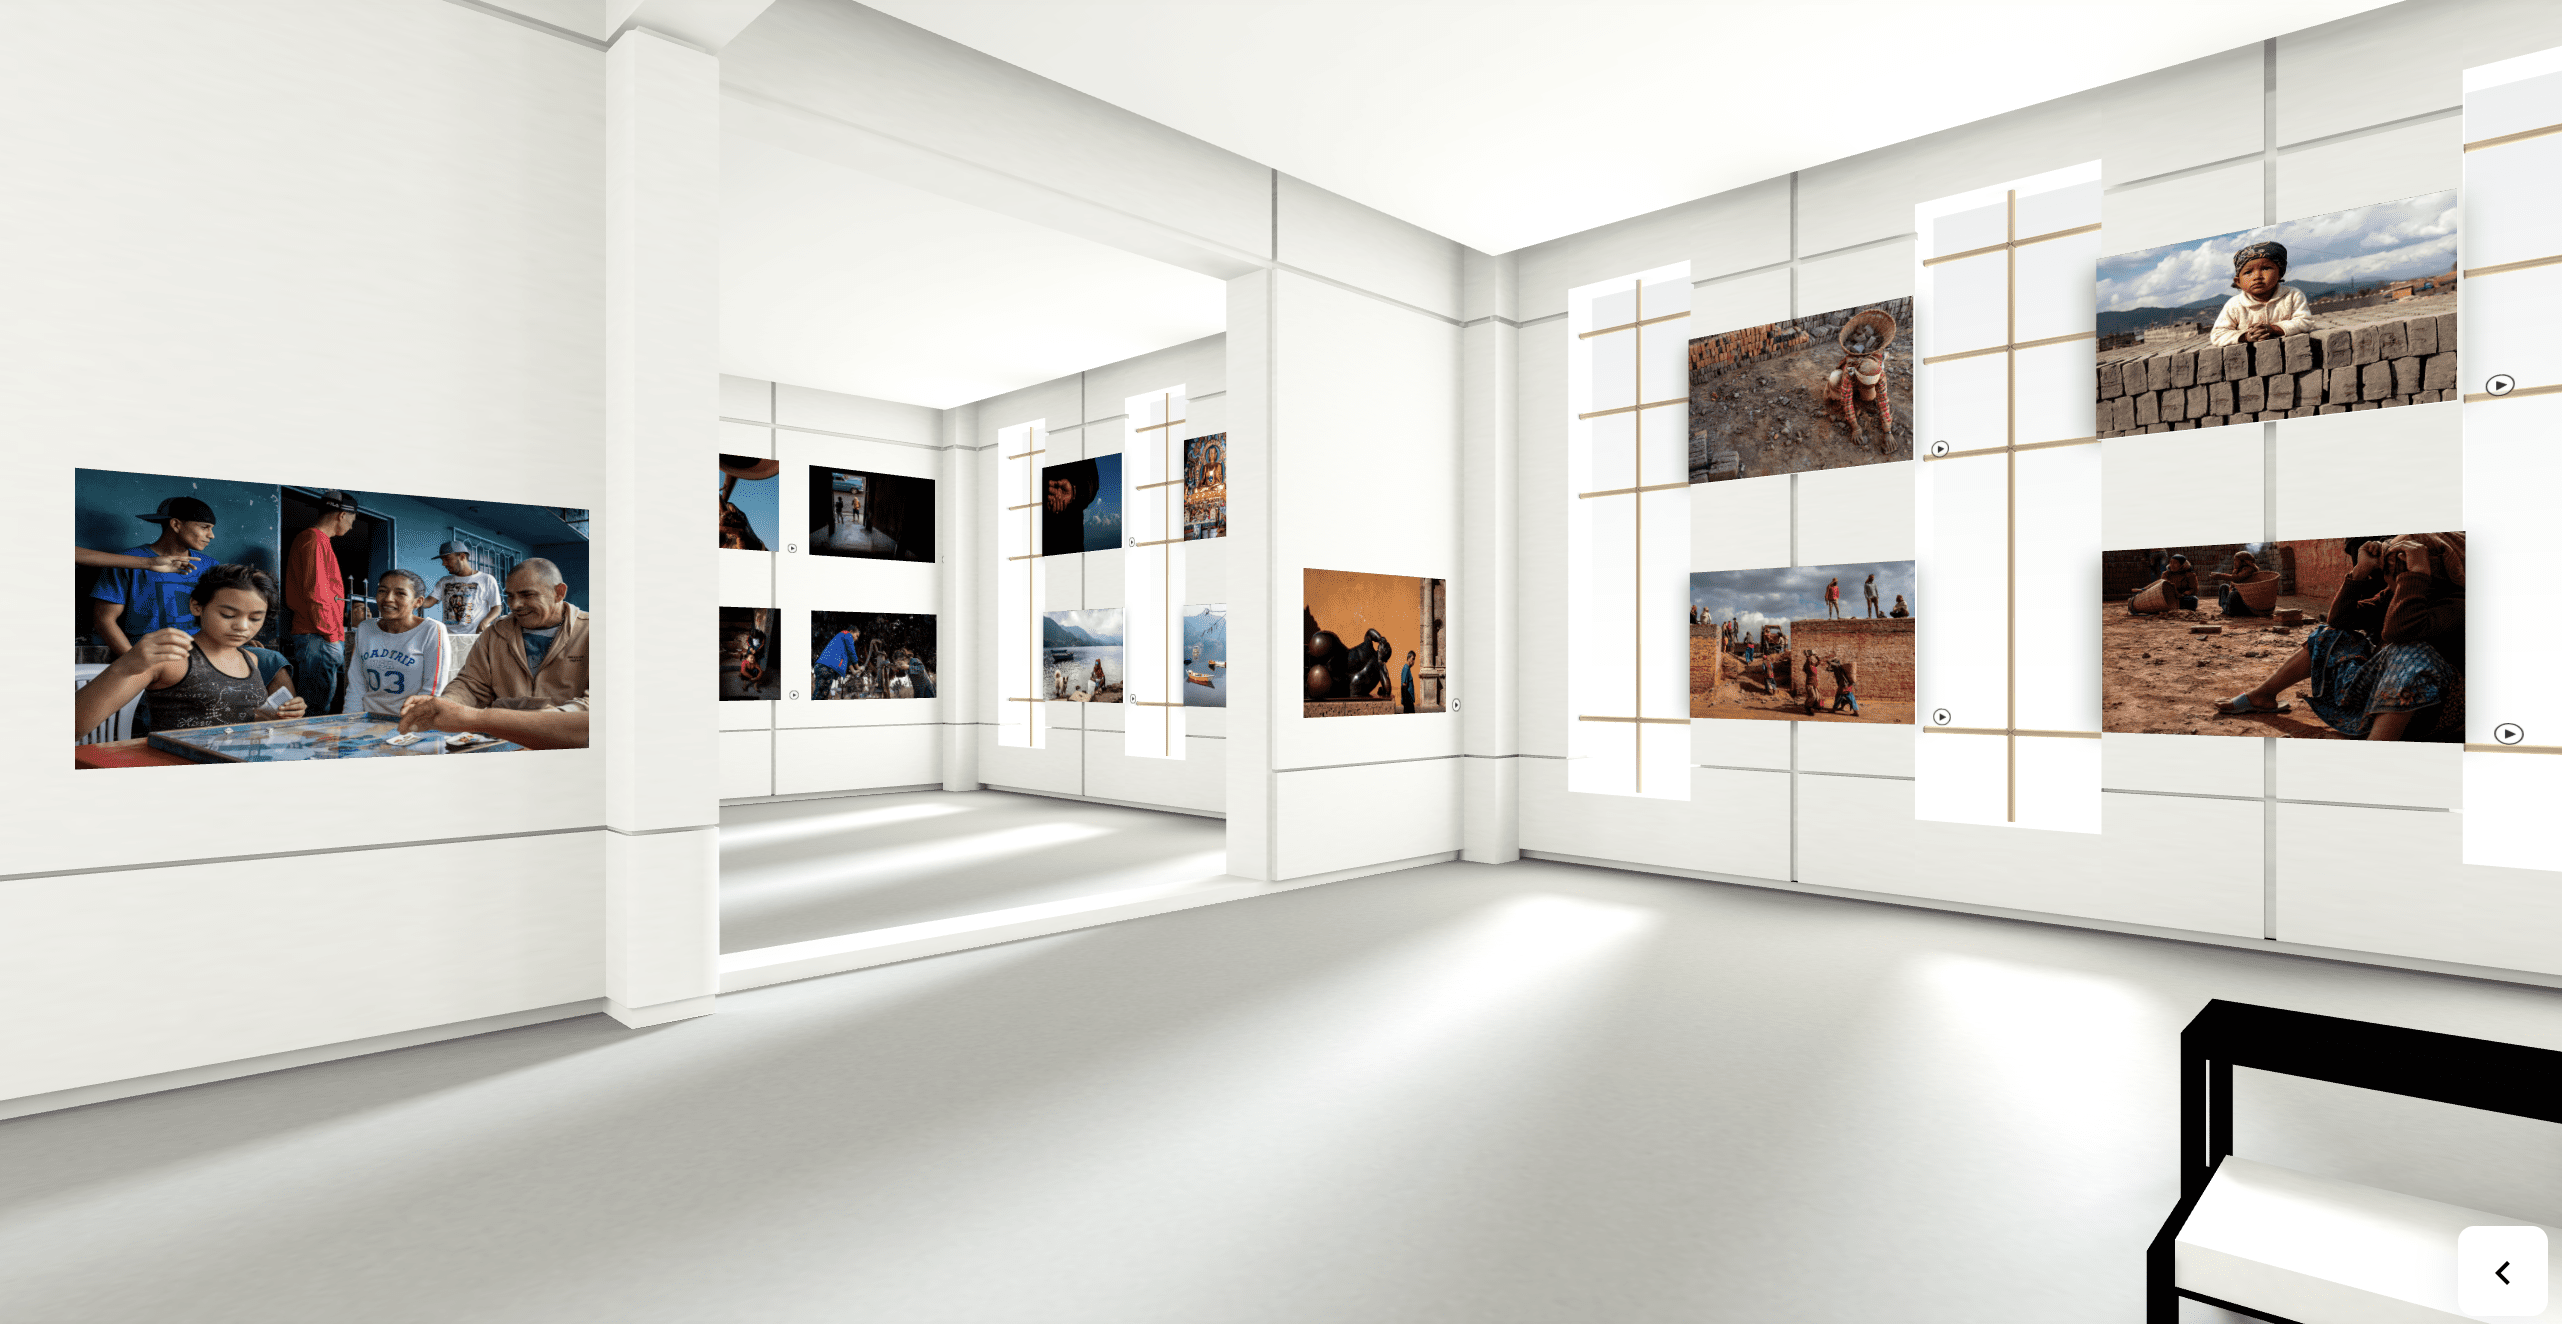 Photo of a 3D Gallery for a virtual Street Photography exhibition